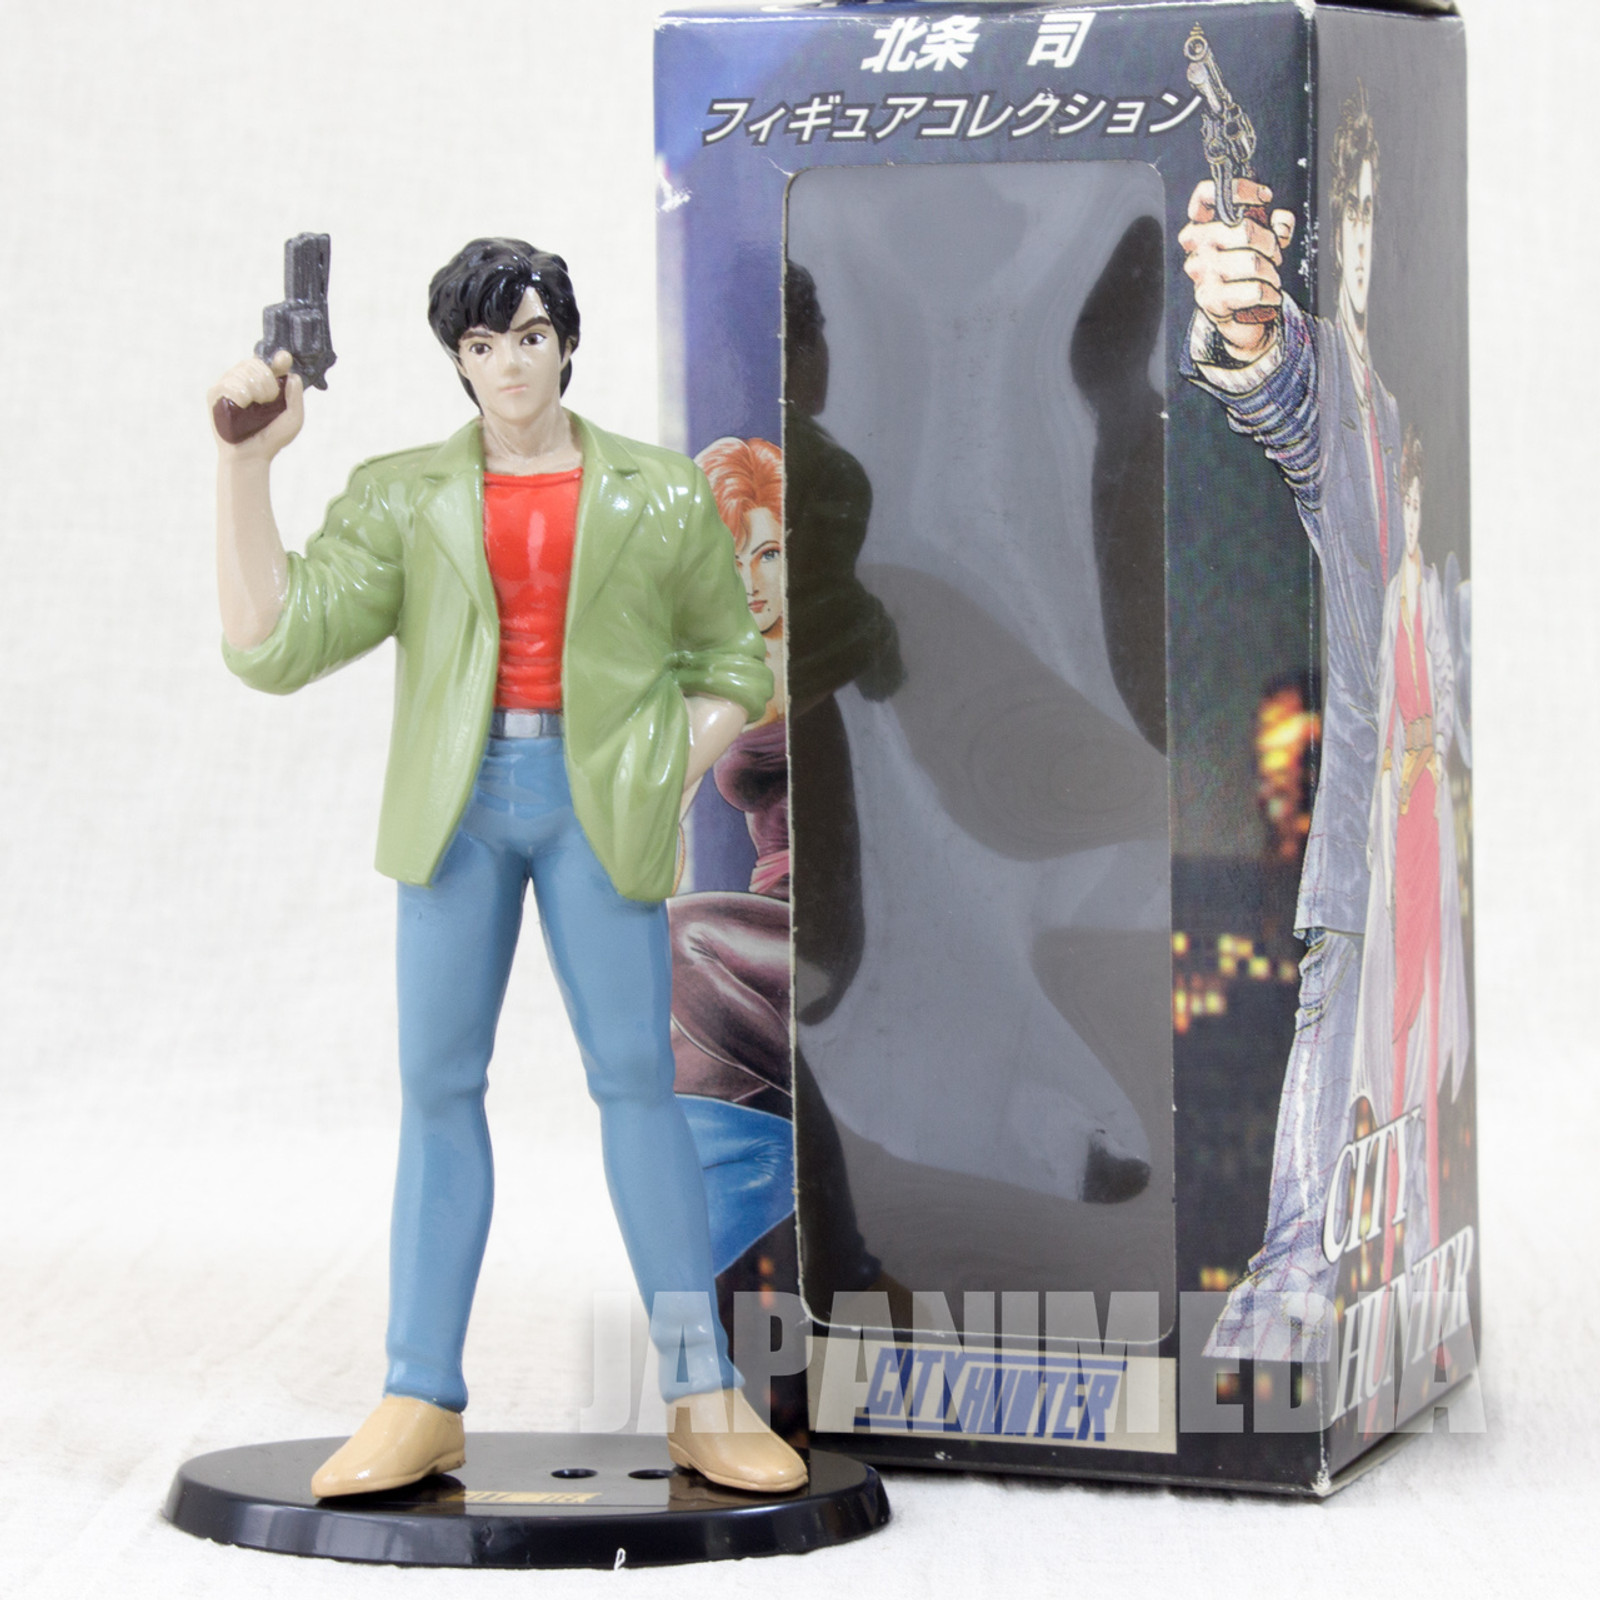 RARE City Hunter Ryo Saeba Mini Figure Hojo Tsukasa JAPAN ANIME MANGA